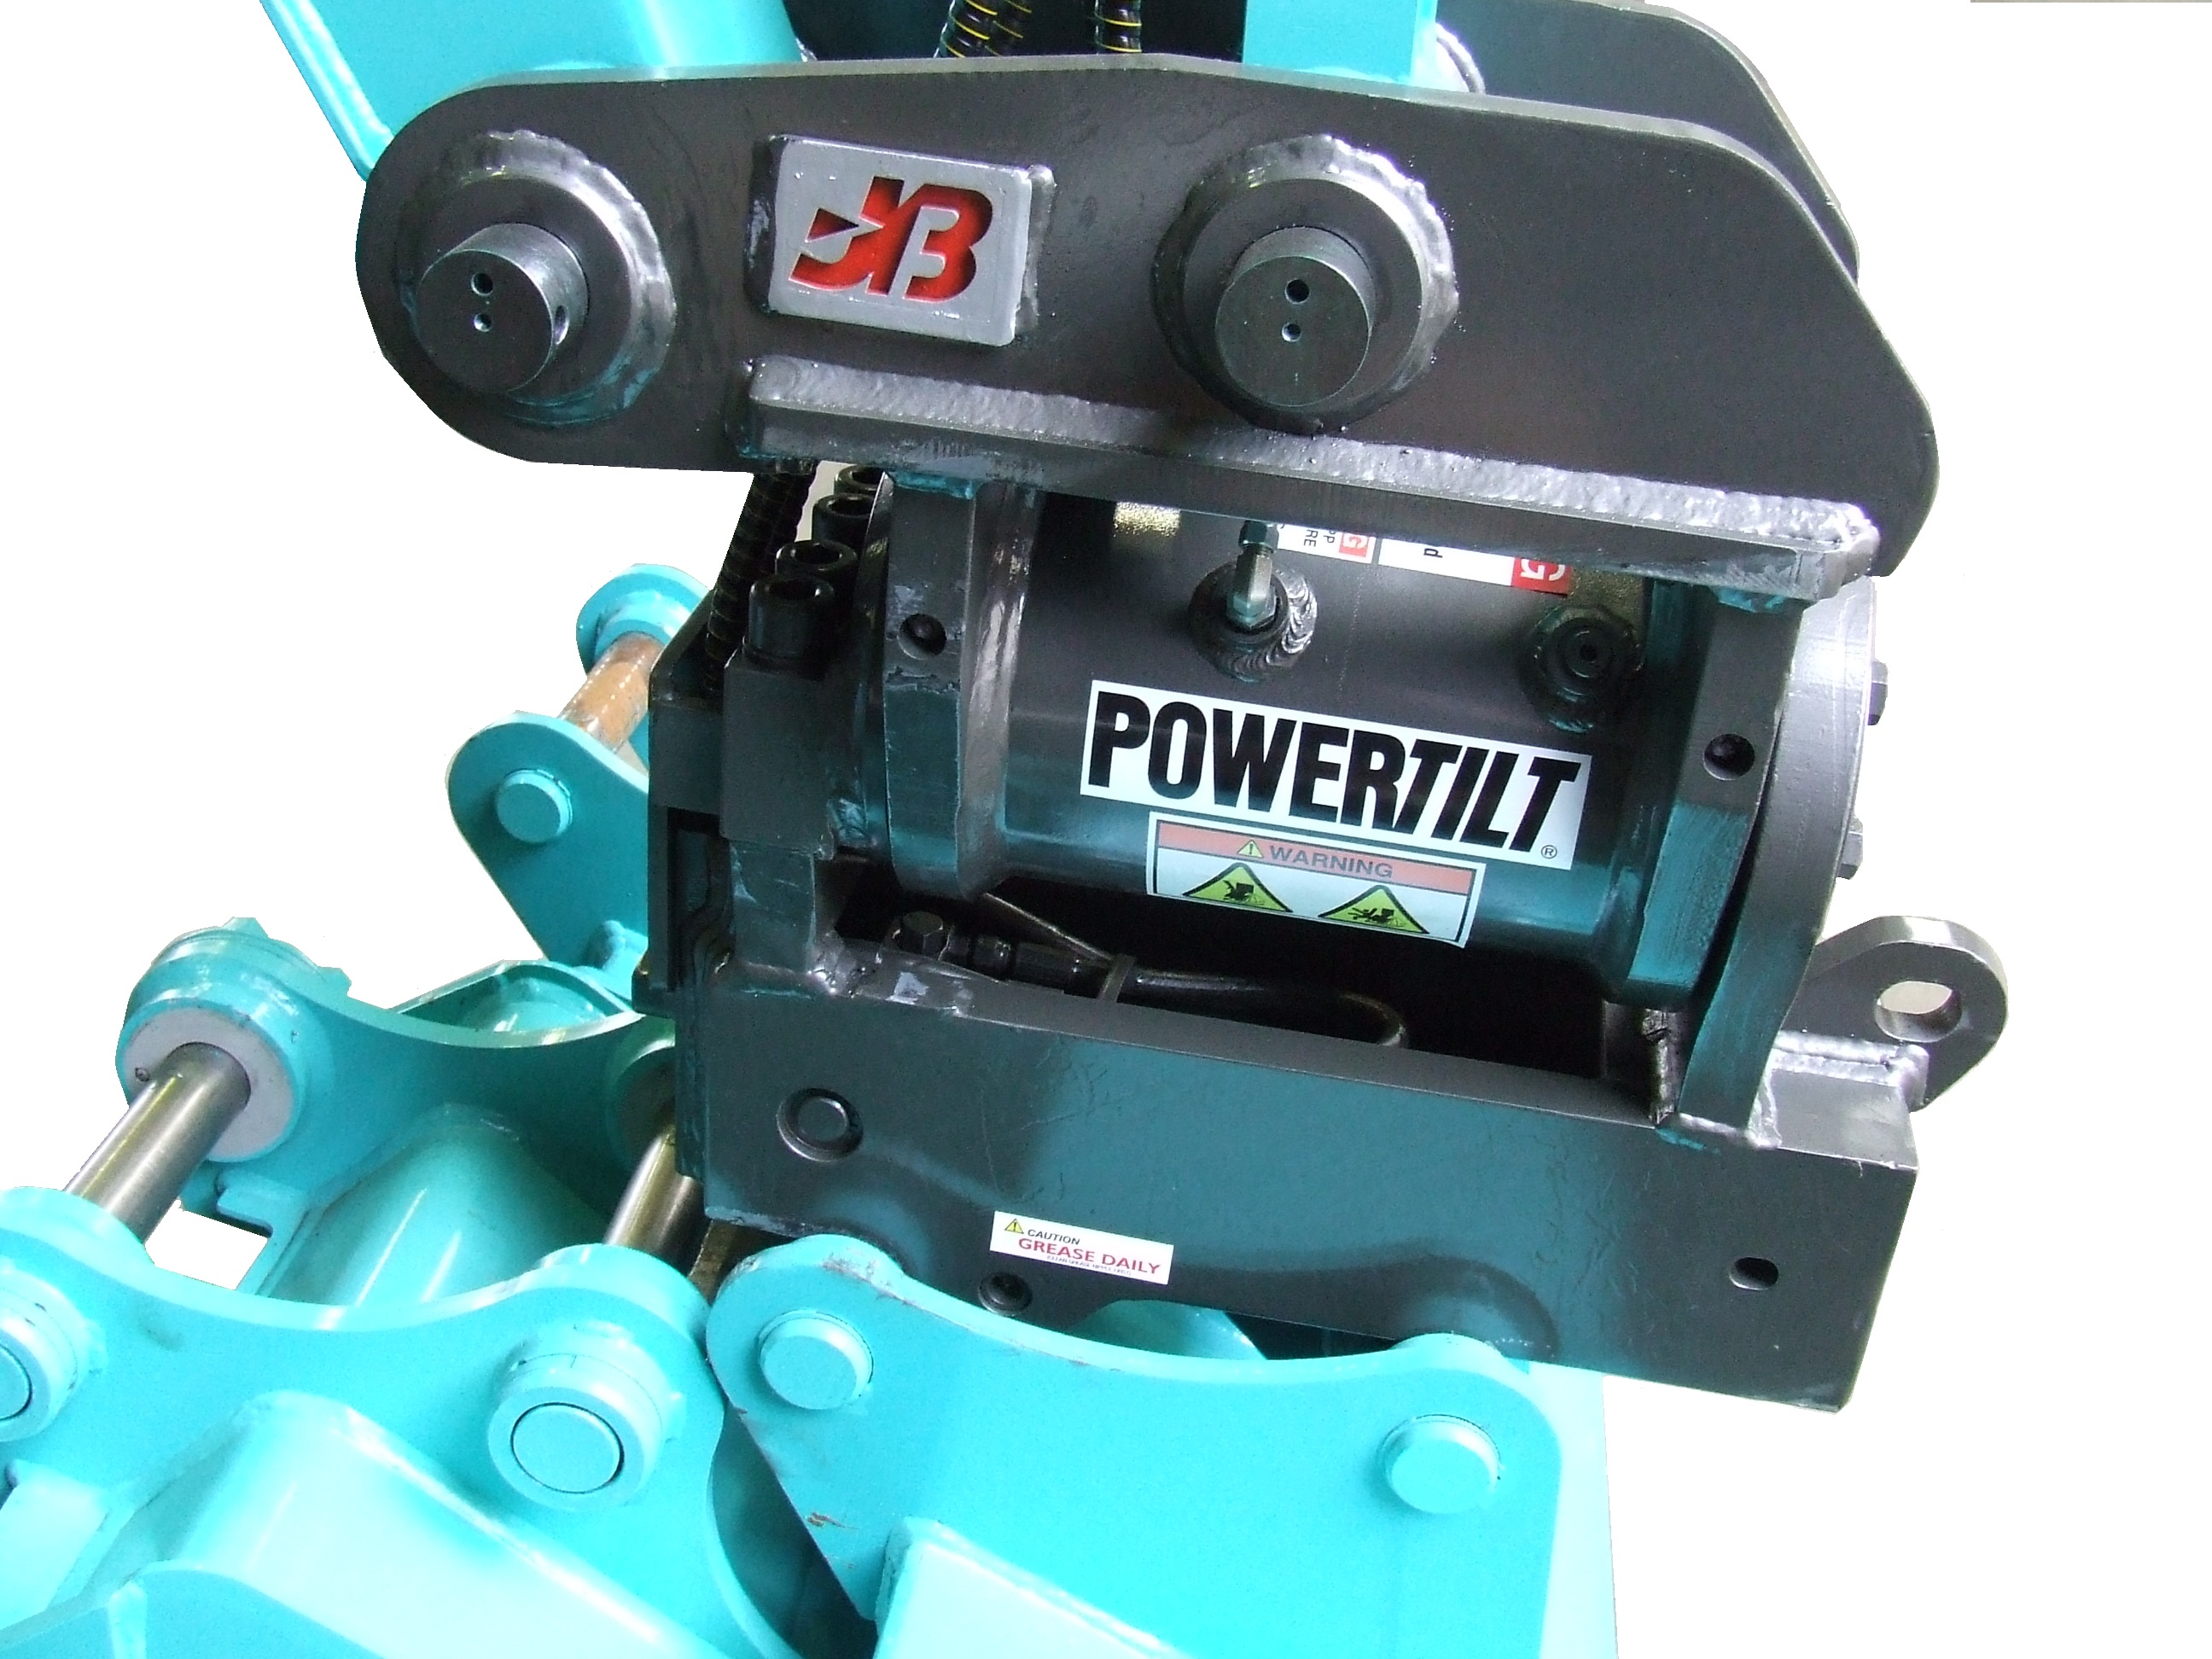 DLM Machinery - Powertilt machine